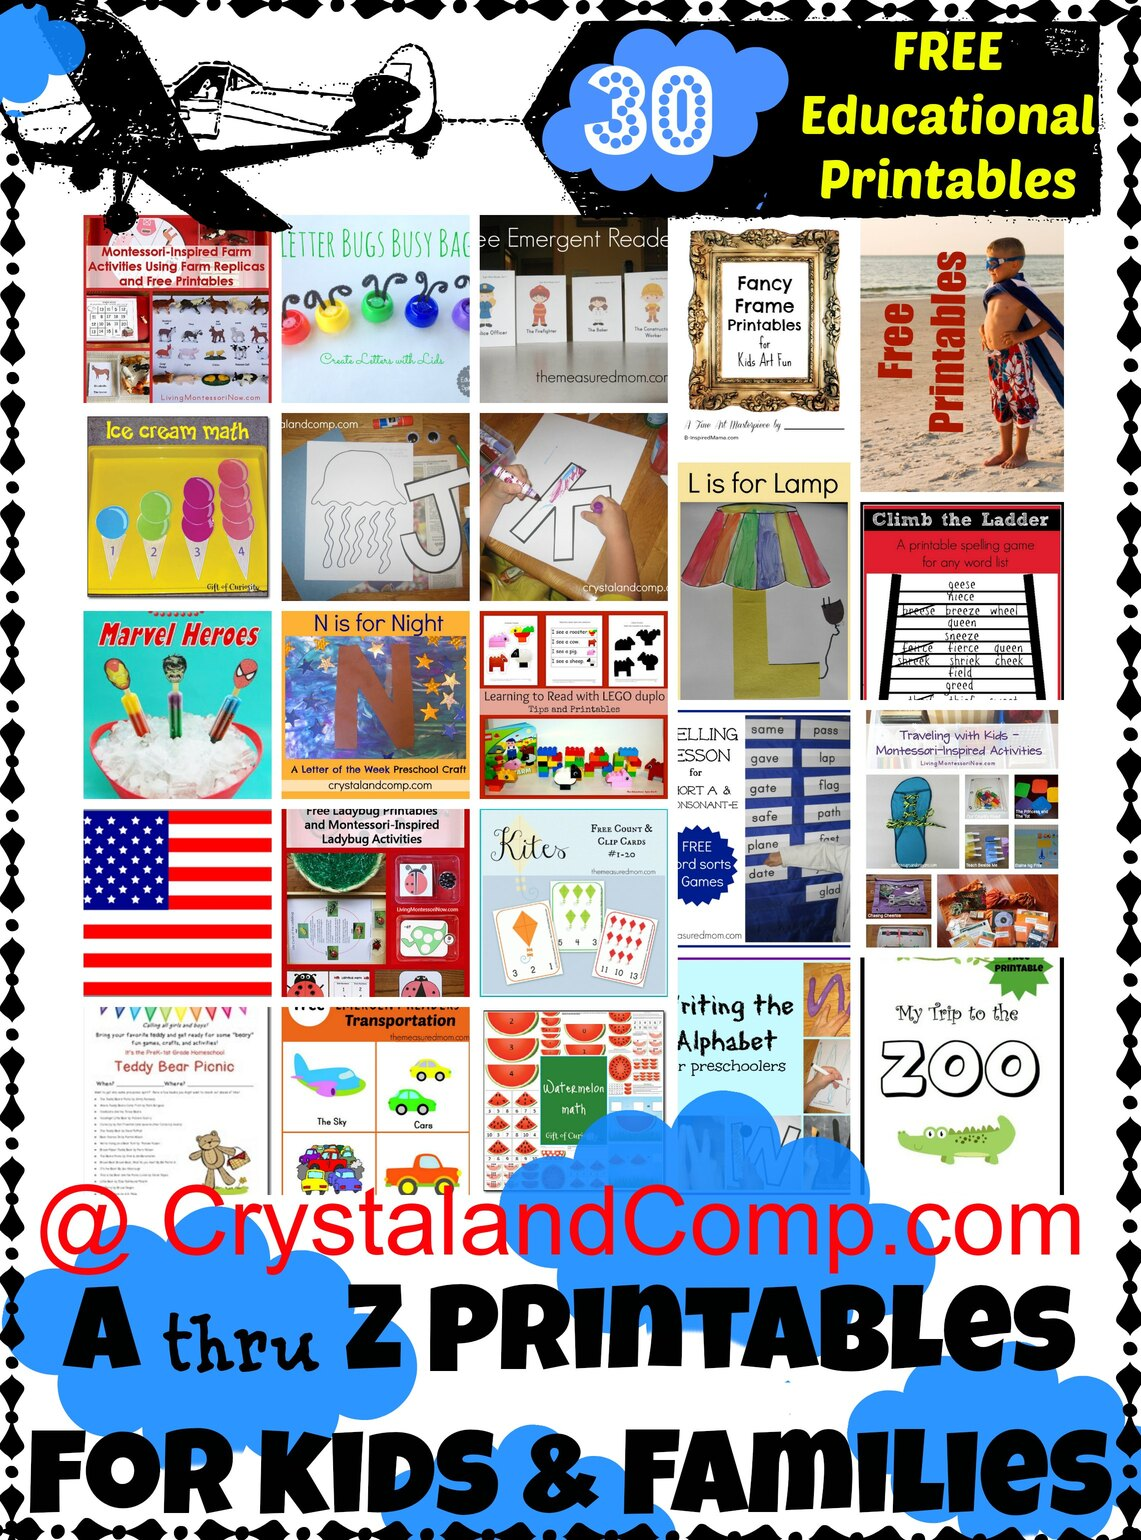 It is an image of Dynamite Free Education Printables